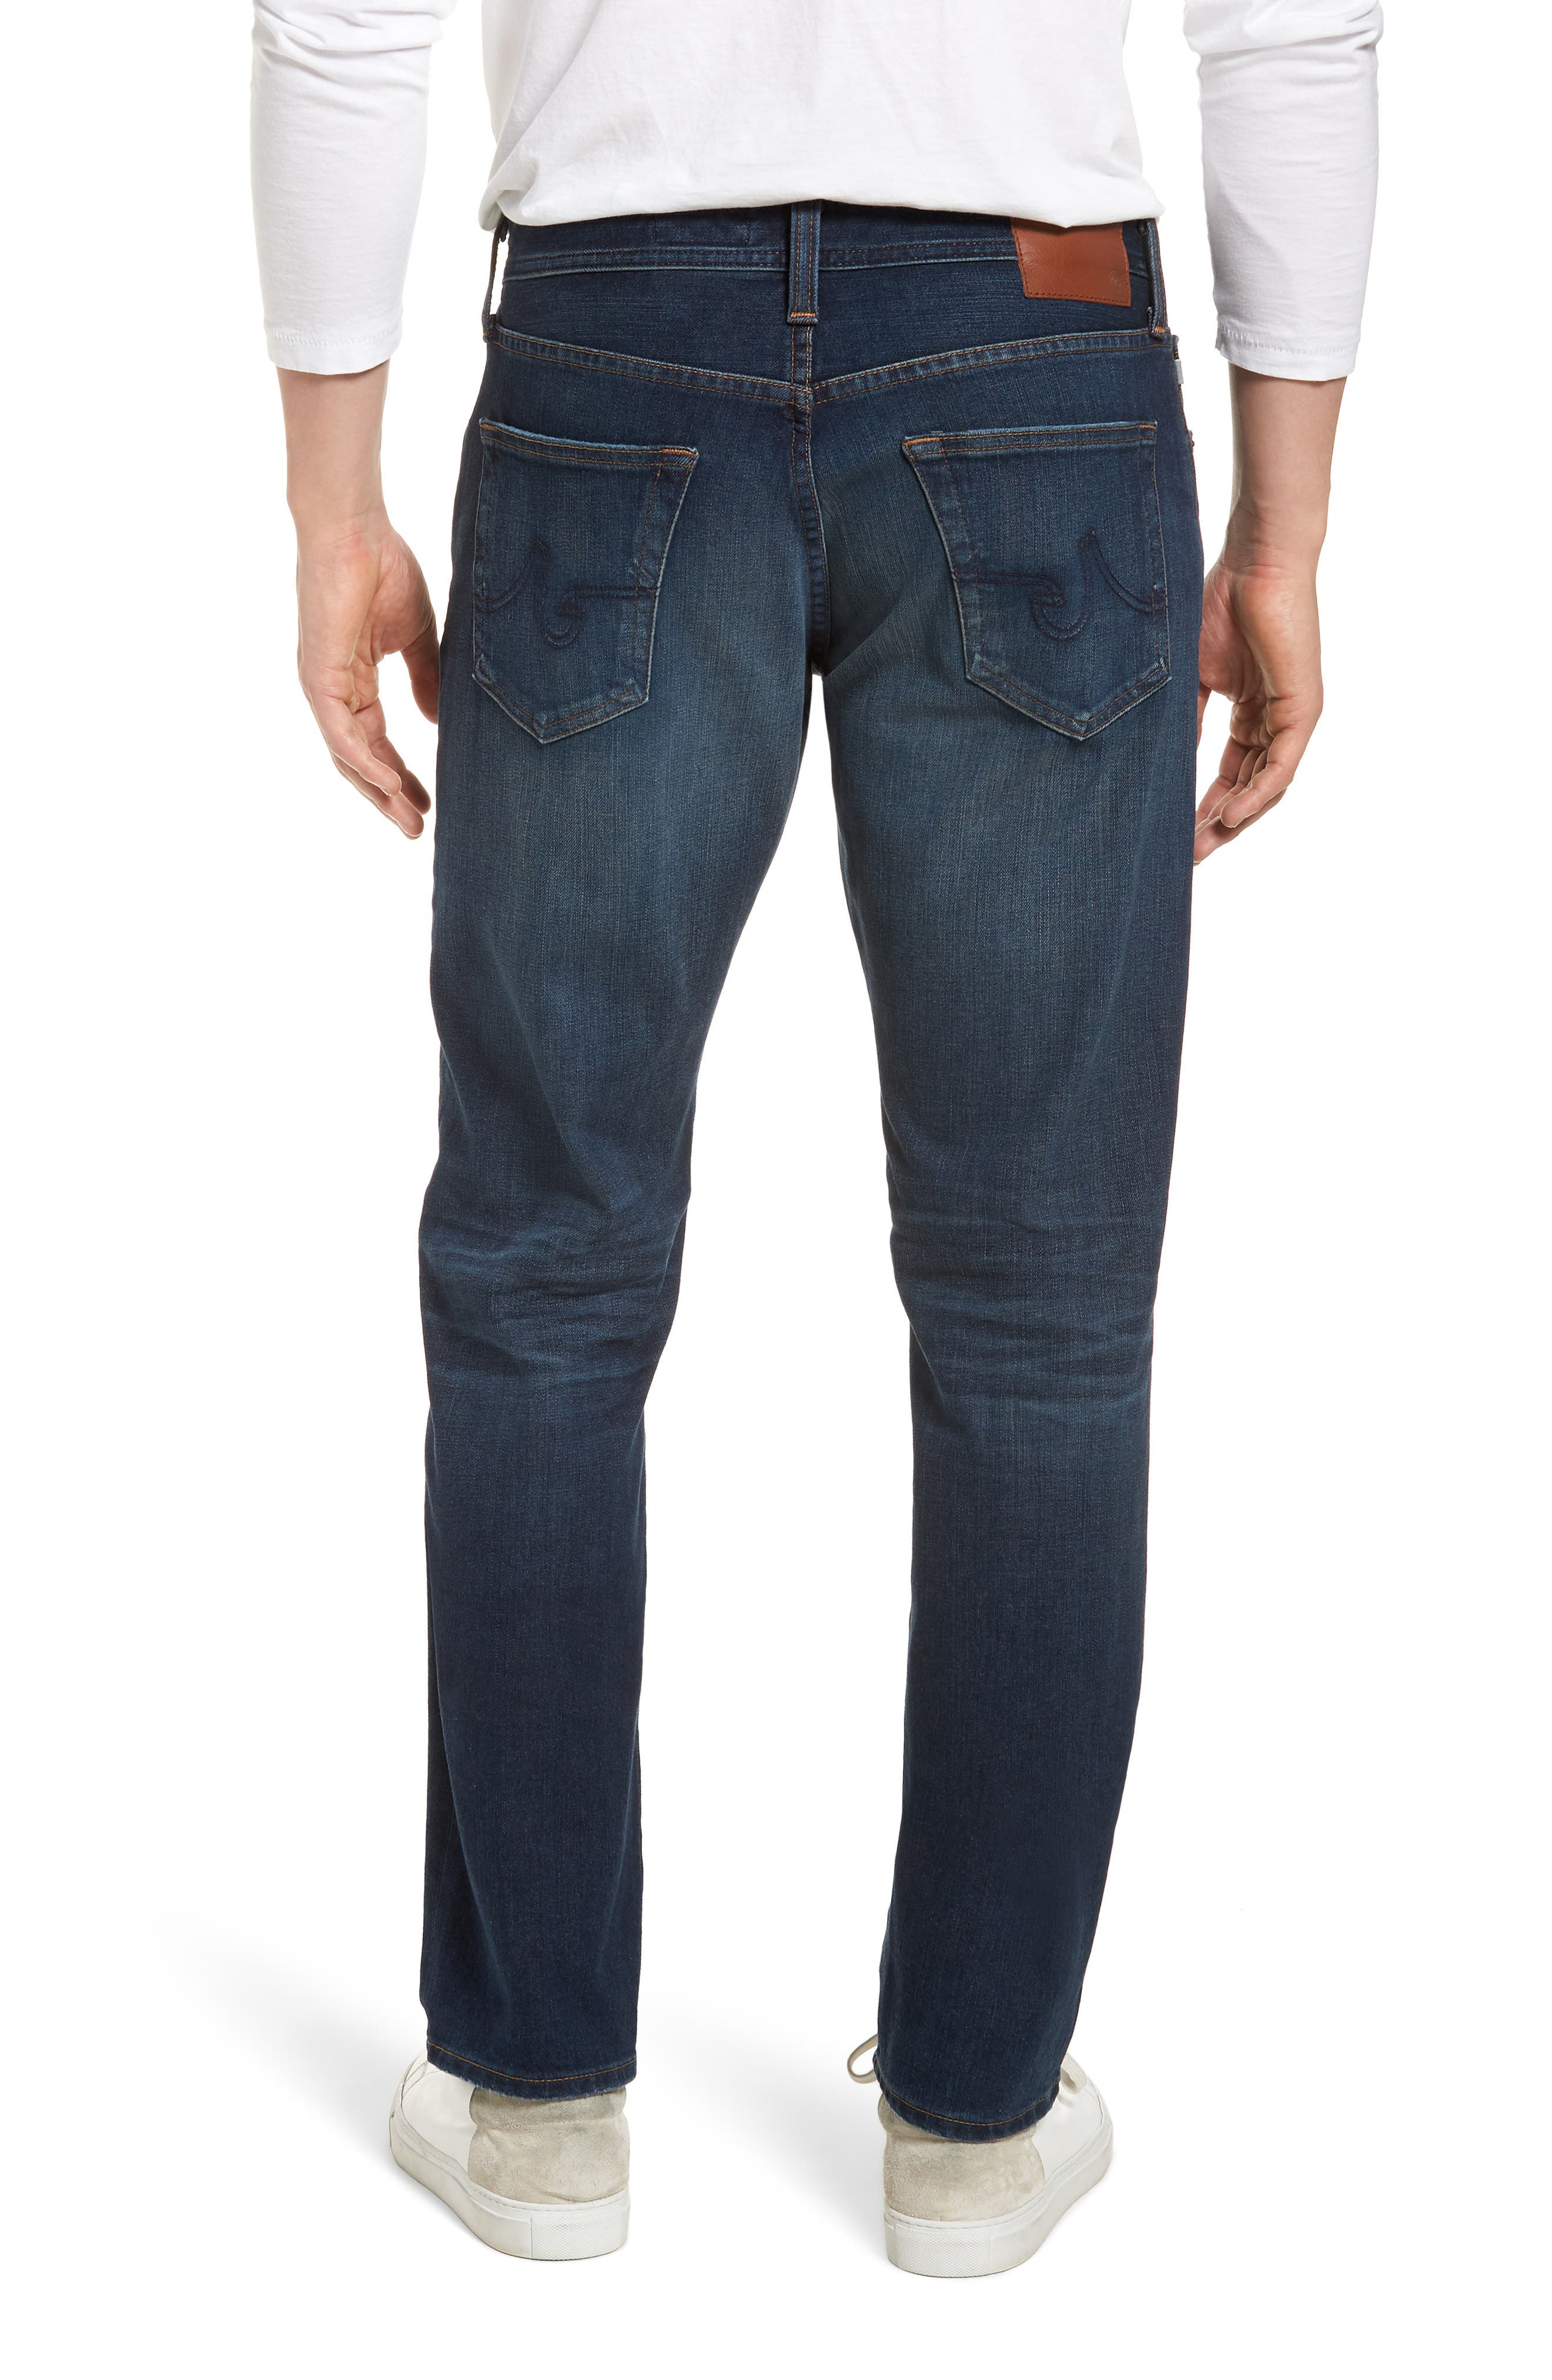 Graduate Slim Straight Leg Jeans,                             Alternate thumbnail 2, color,                             9 Years Faring